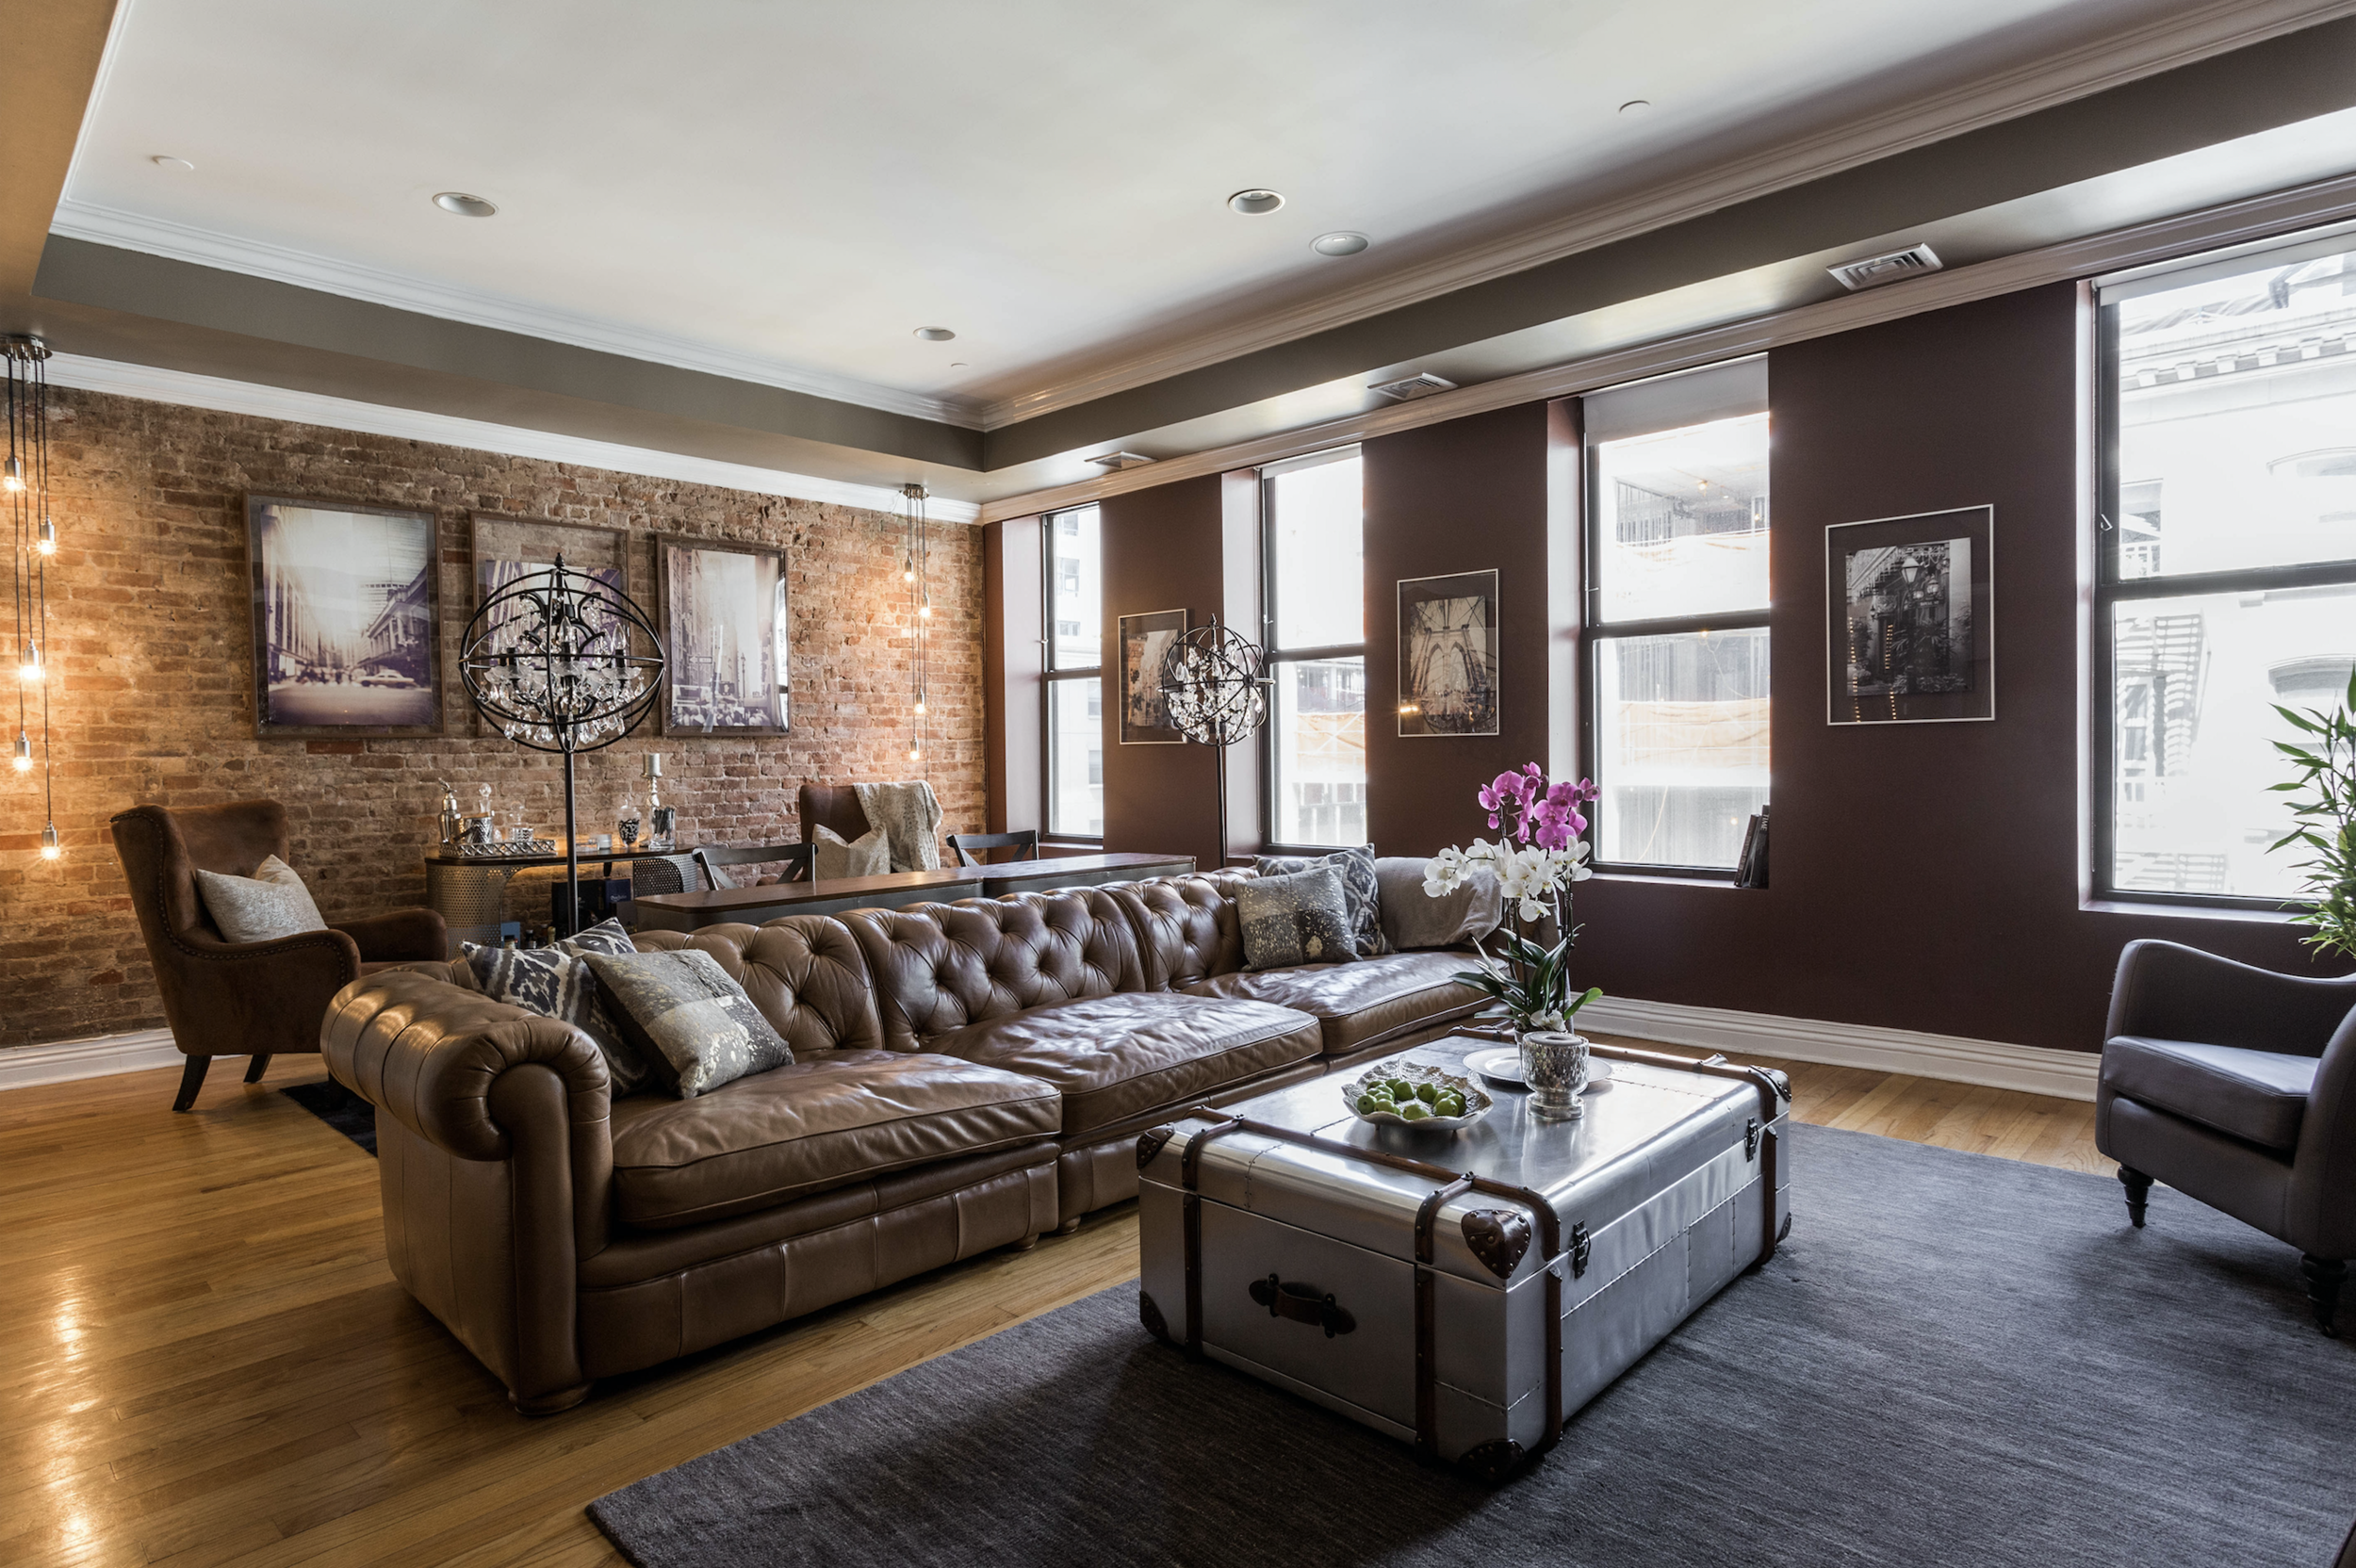 Stylish living room with dark brown leather sofa